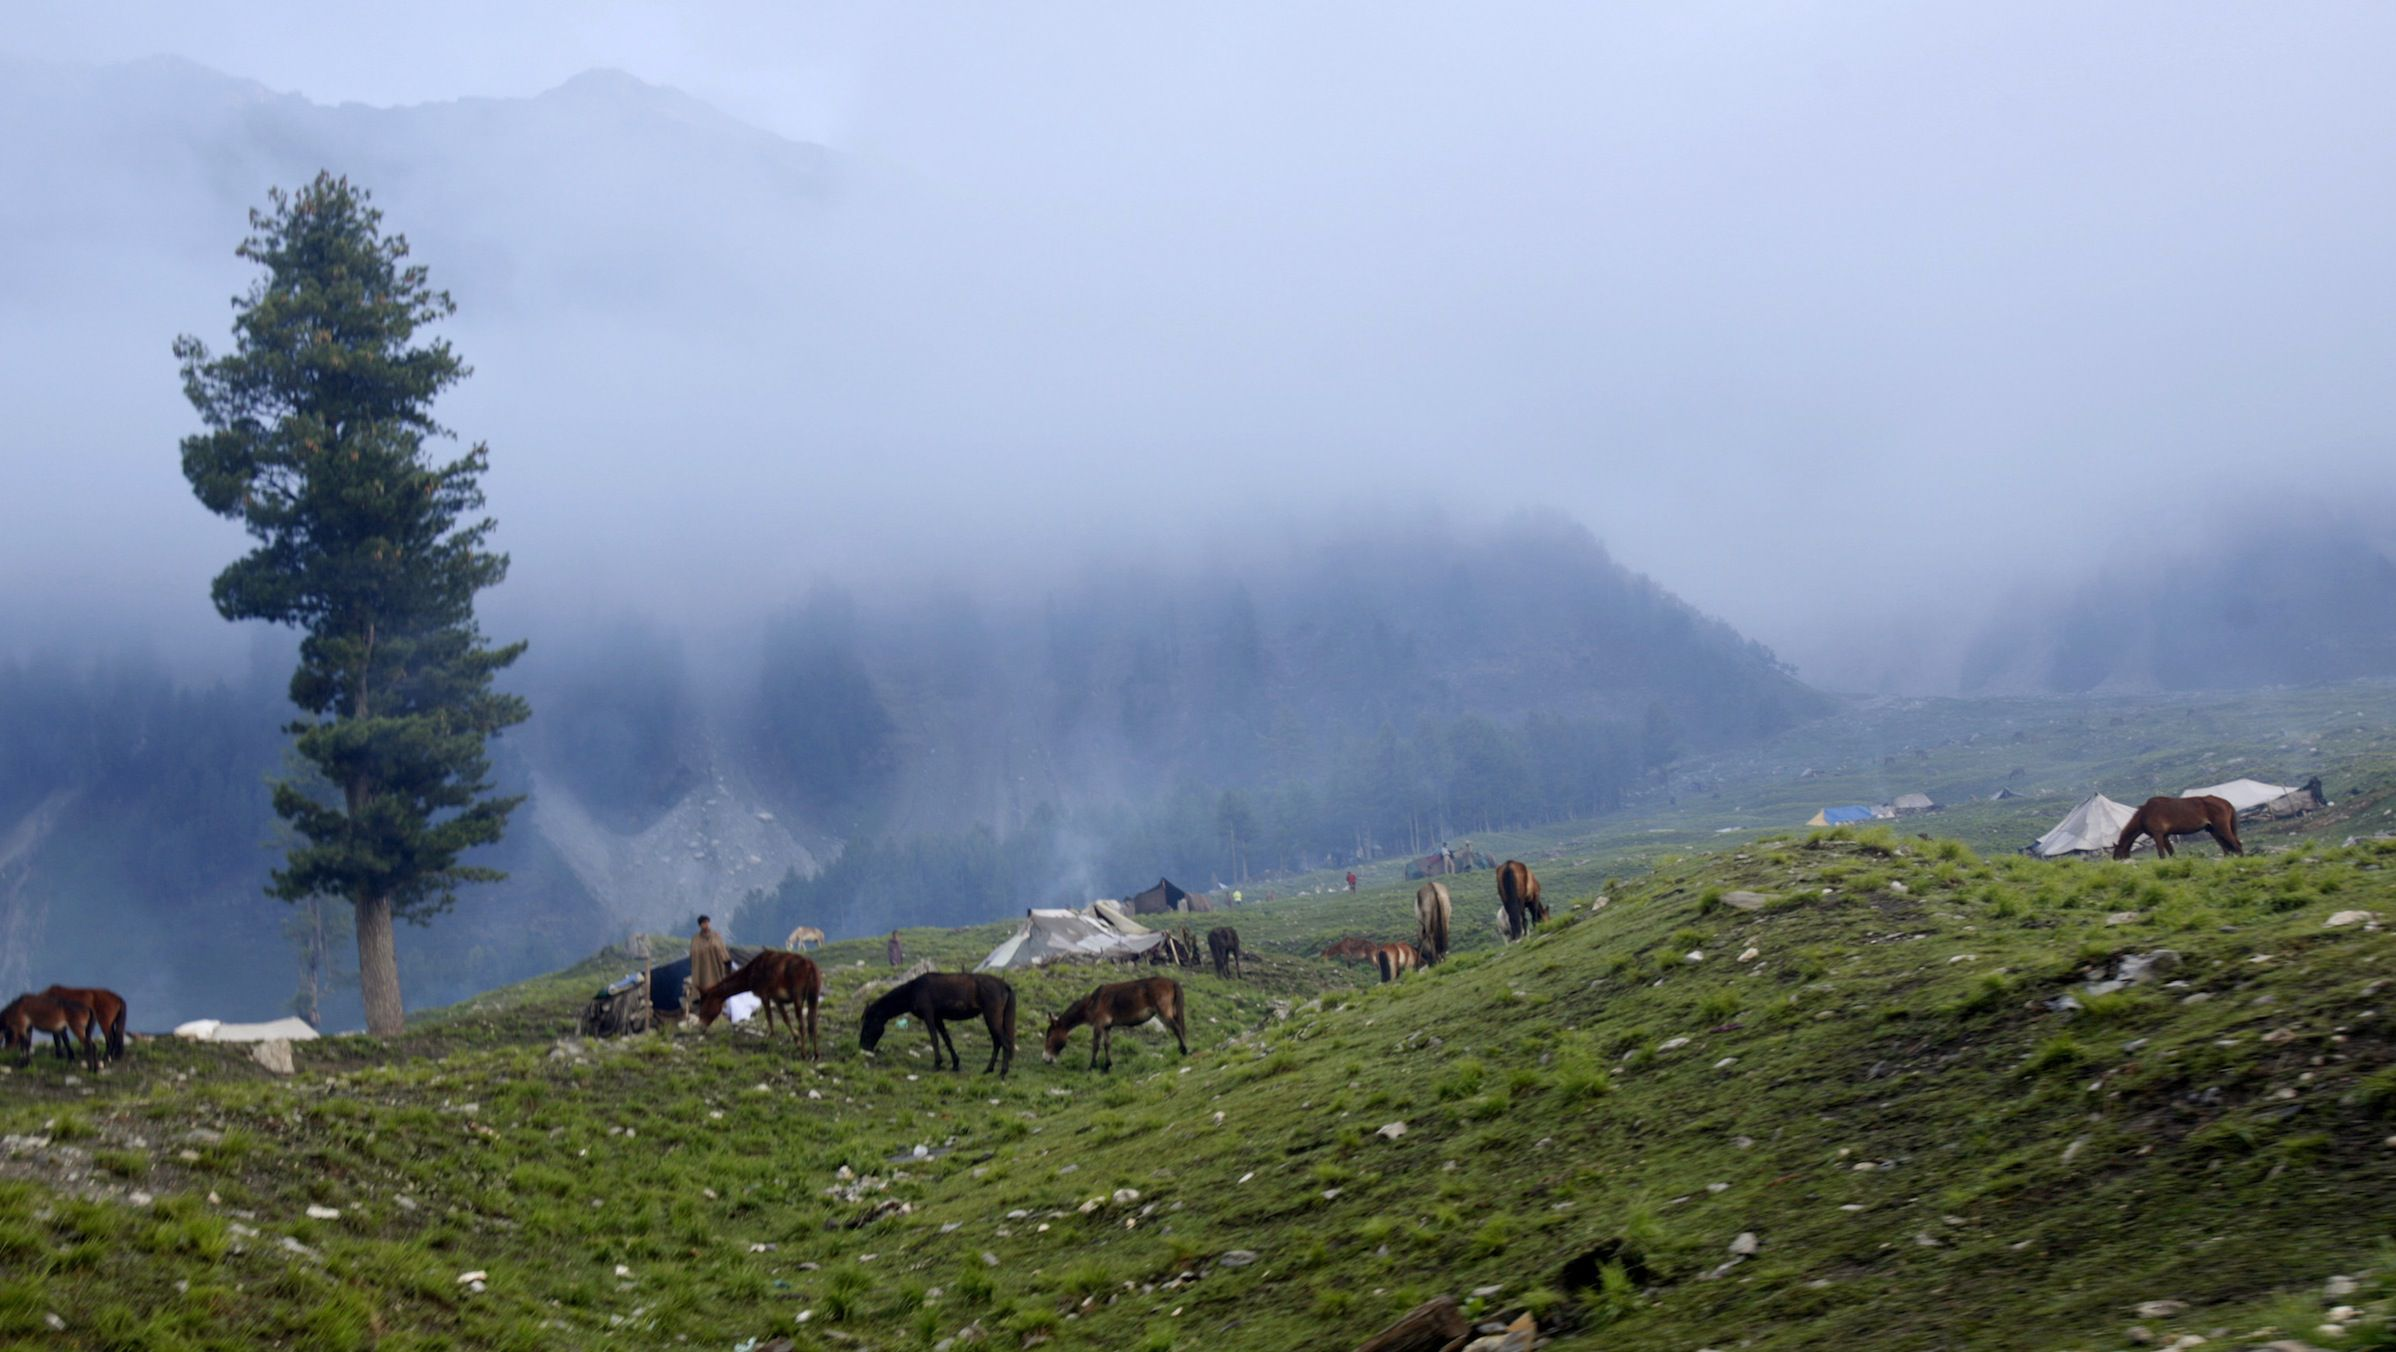 Kashmiri nomads graze their cattle at a base camp of a Hindu pilgrimage to the holy cave of Amarnath, in Baltal, 125 km (77 miles) southeast of Srinagar July 1, 2007. An ice stalagmite that forms in a Himalayan cave and is worshipped as a Hindu god has melted completely for the second year, officials said on Monday, as a pilgrimage to the site was suspended due to bad weather. Picture taken July 1, 2007.  REUTERS/Fayaz Kabli   (INDIAN ADMINISTERED KASHMIR) - RTR1RDKV